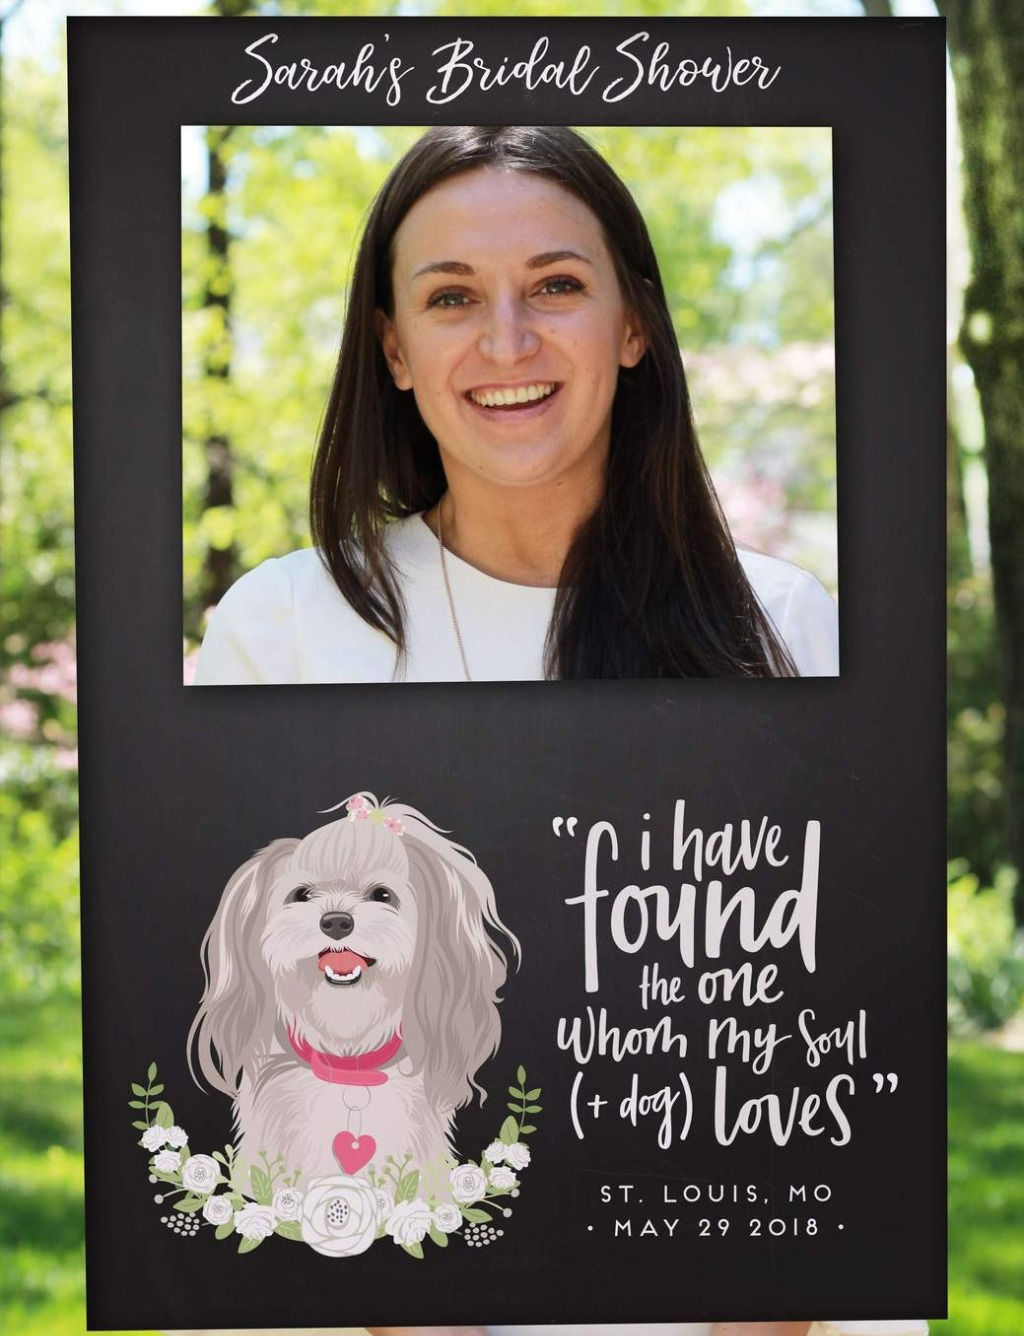 Our Chalkboard Photo Frame Prop makes for the perfect photo op for your bridal shower or big day!! It includes an illustration of your